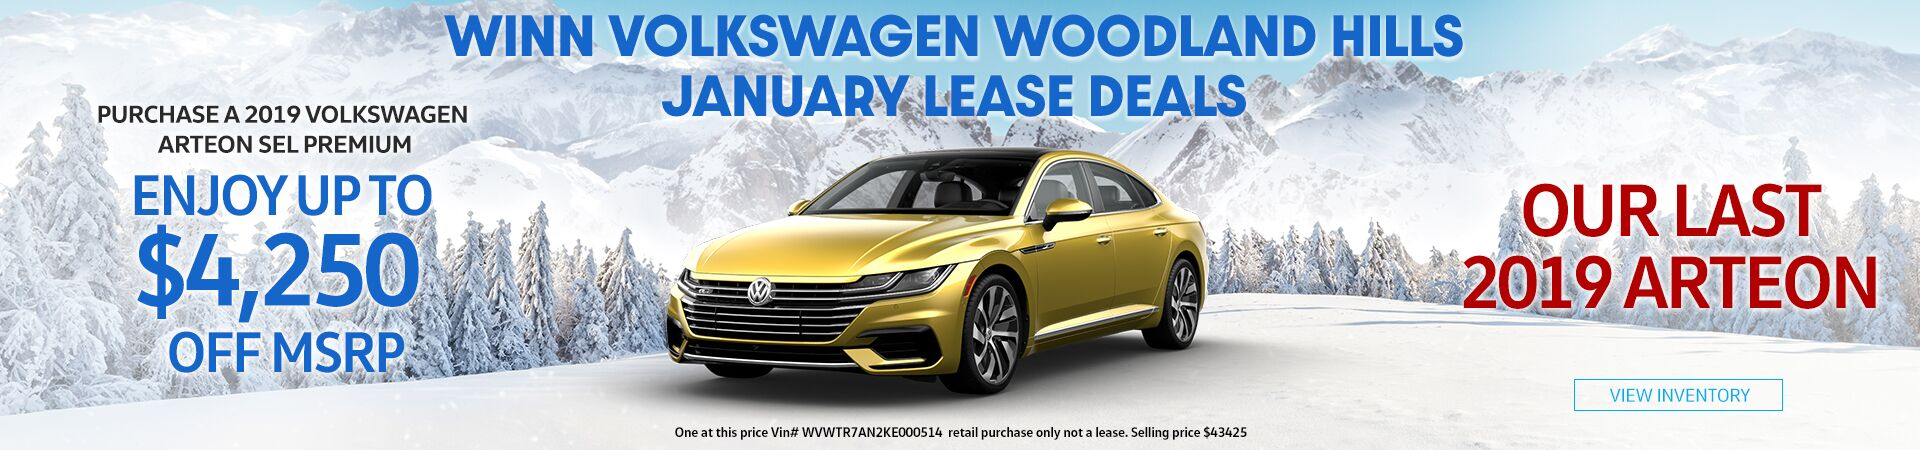 2019 Arteon deals